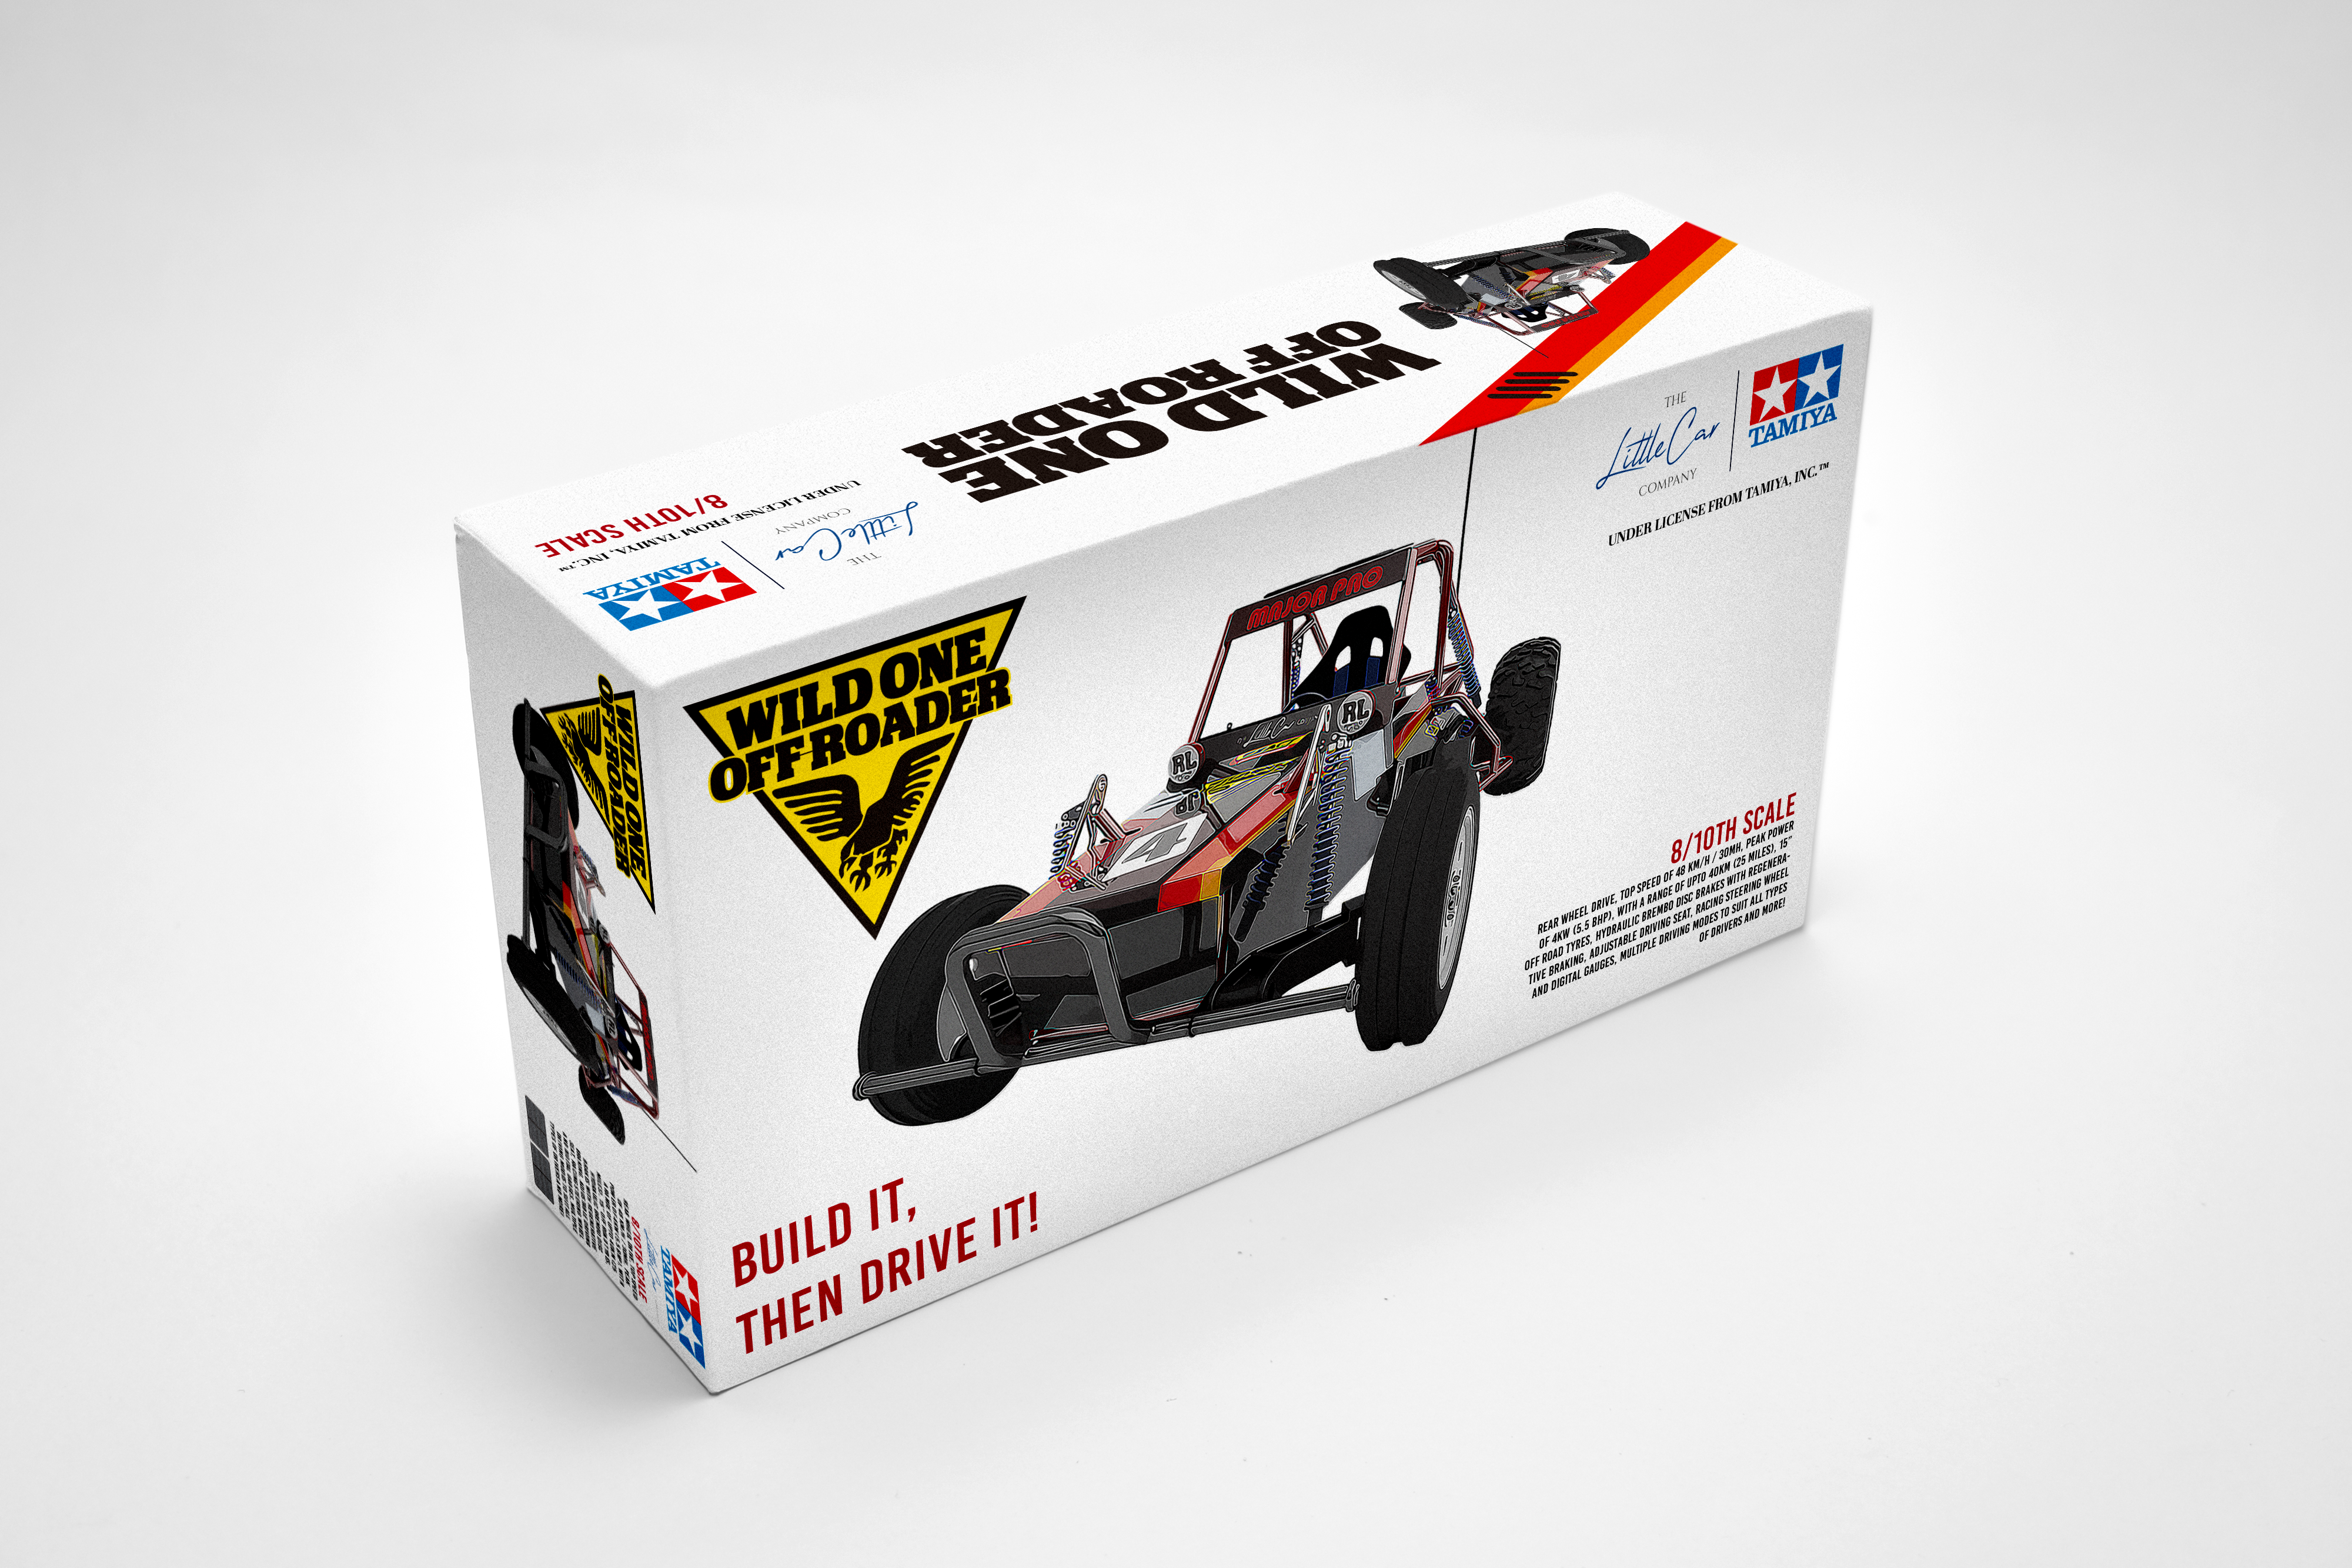 delivered-directly-to-your-door-the-tamiya-wild-one-max-giant-kit-will-provide-you-with-everything-you-need.png